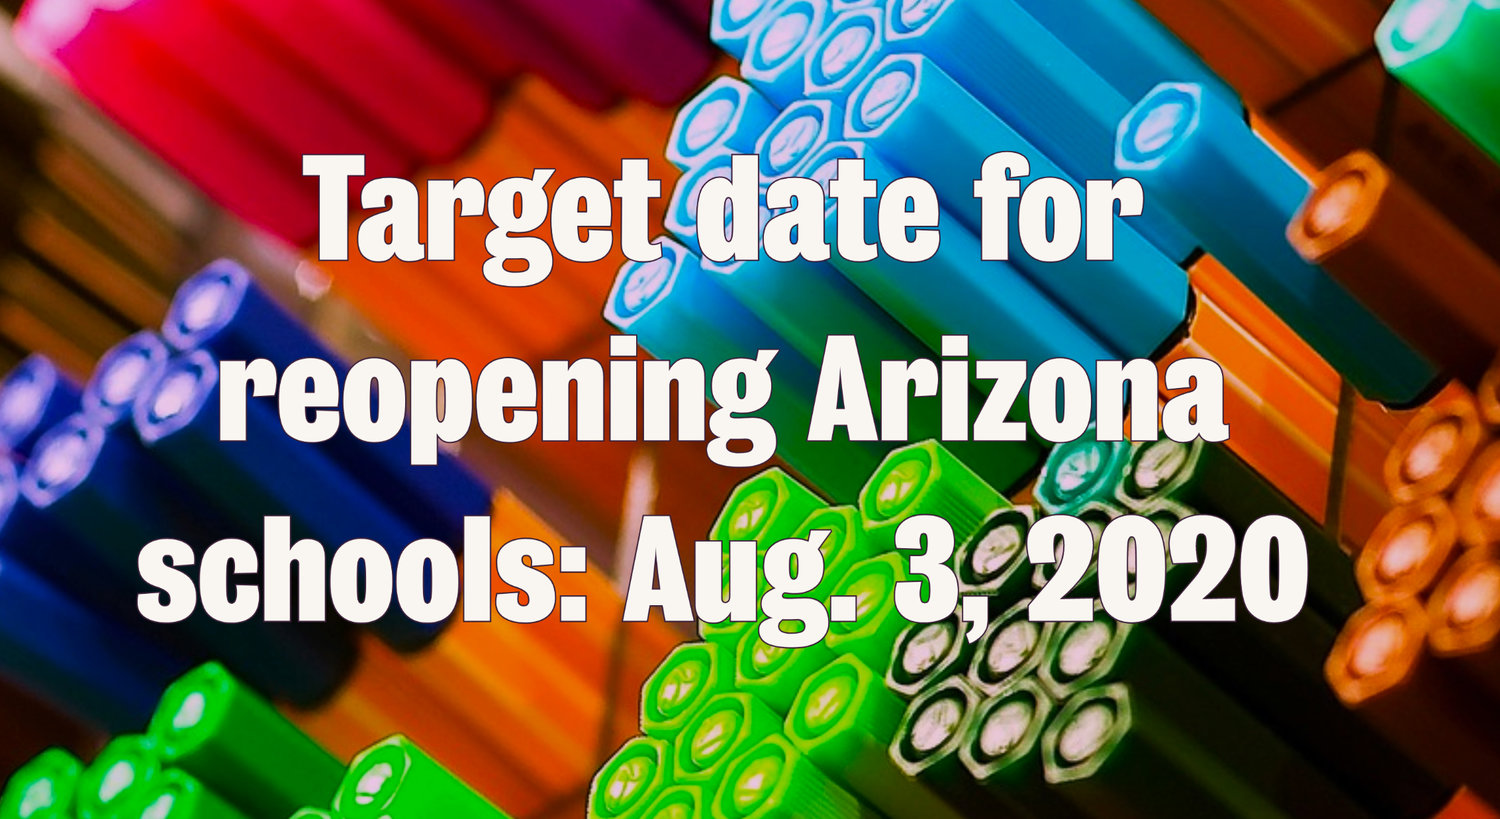 Arizona schools are working to reopen Aug. 3 for the 2020-21 academic year if deemed safe by public health officials.